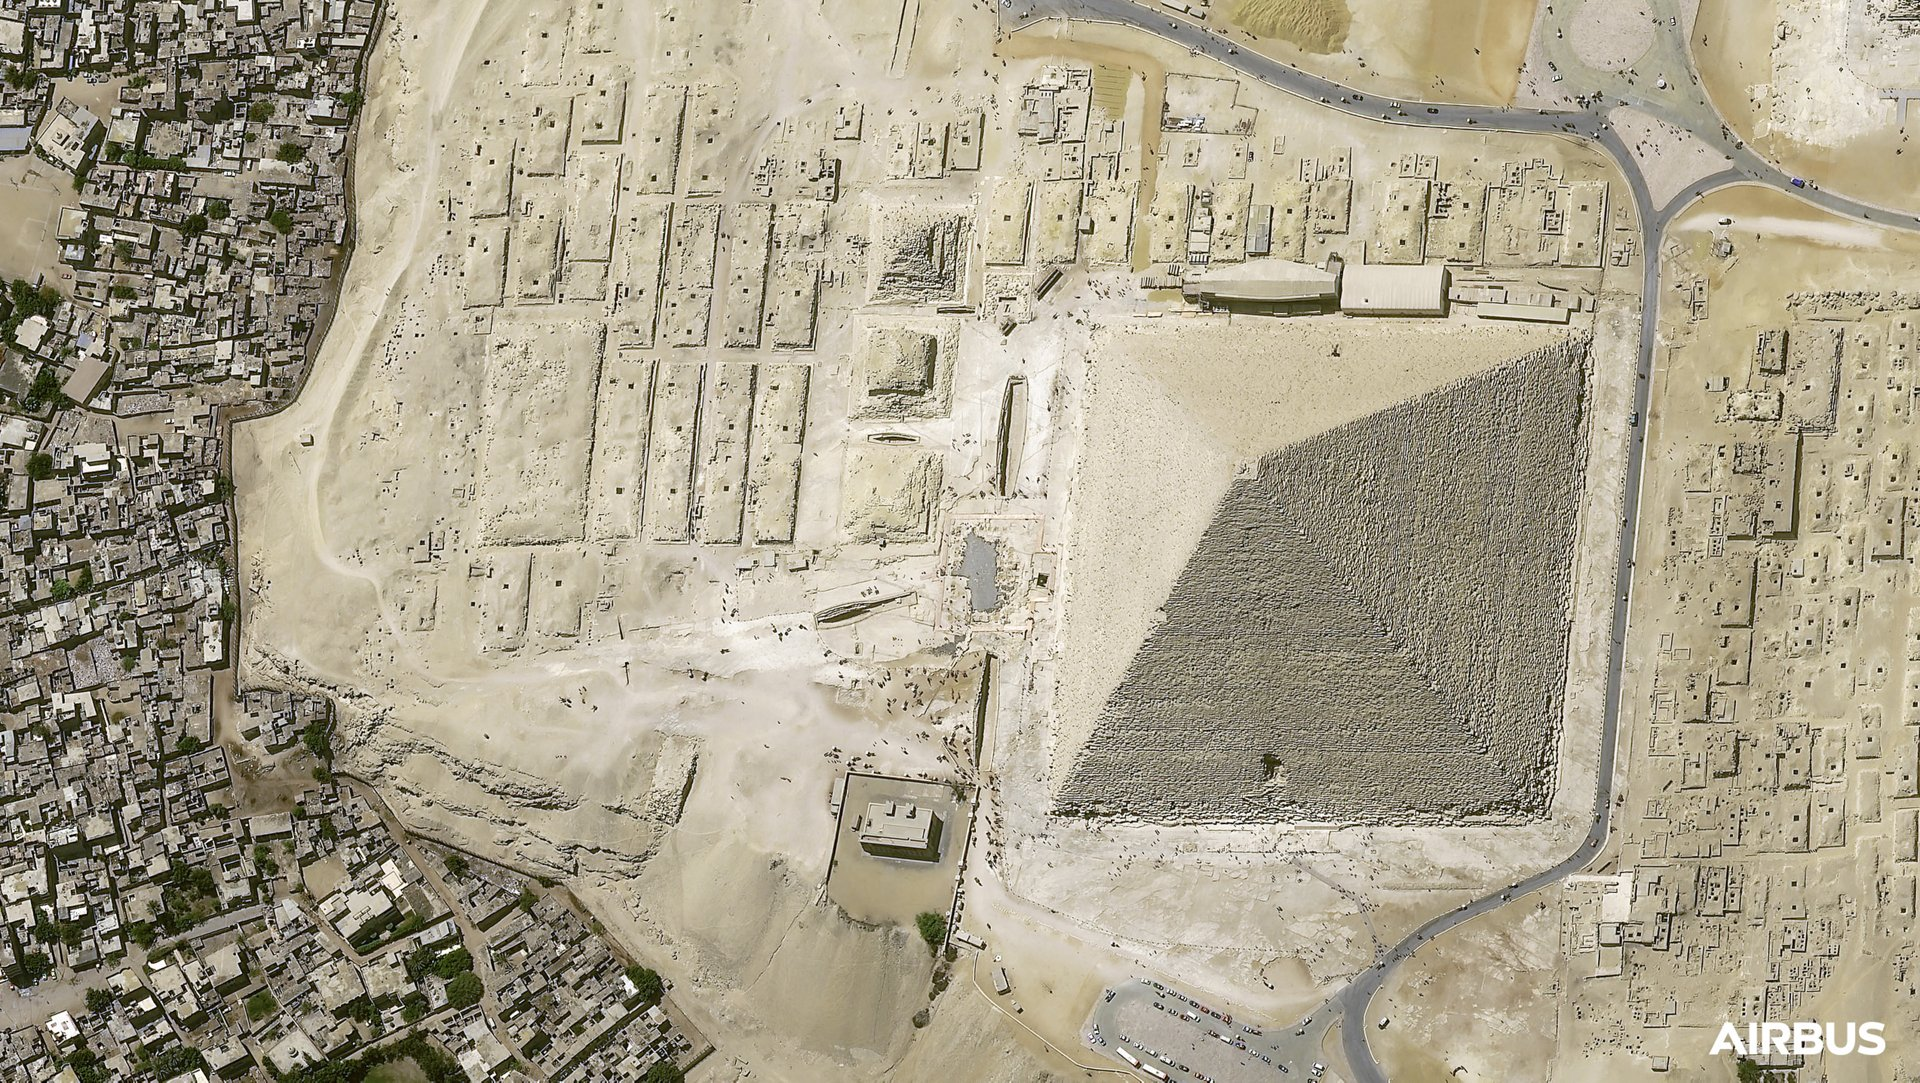 Cheops Pyramid, Cairo, Egypt - at 30cm native resolution, by Pléiades Neo 3 satellite